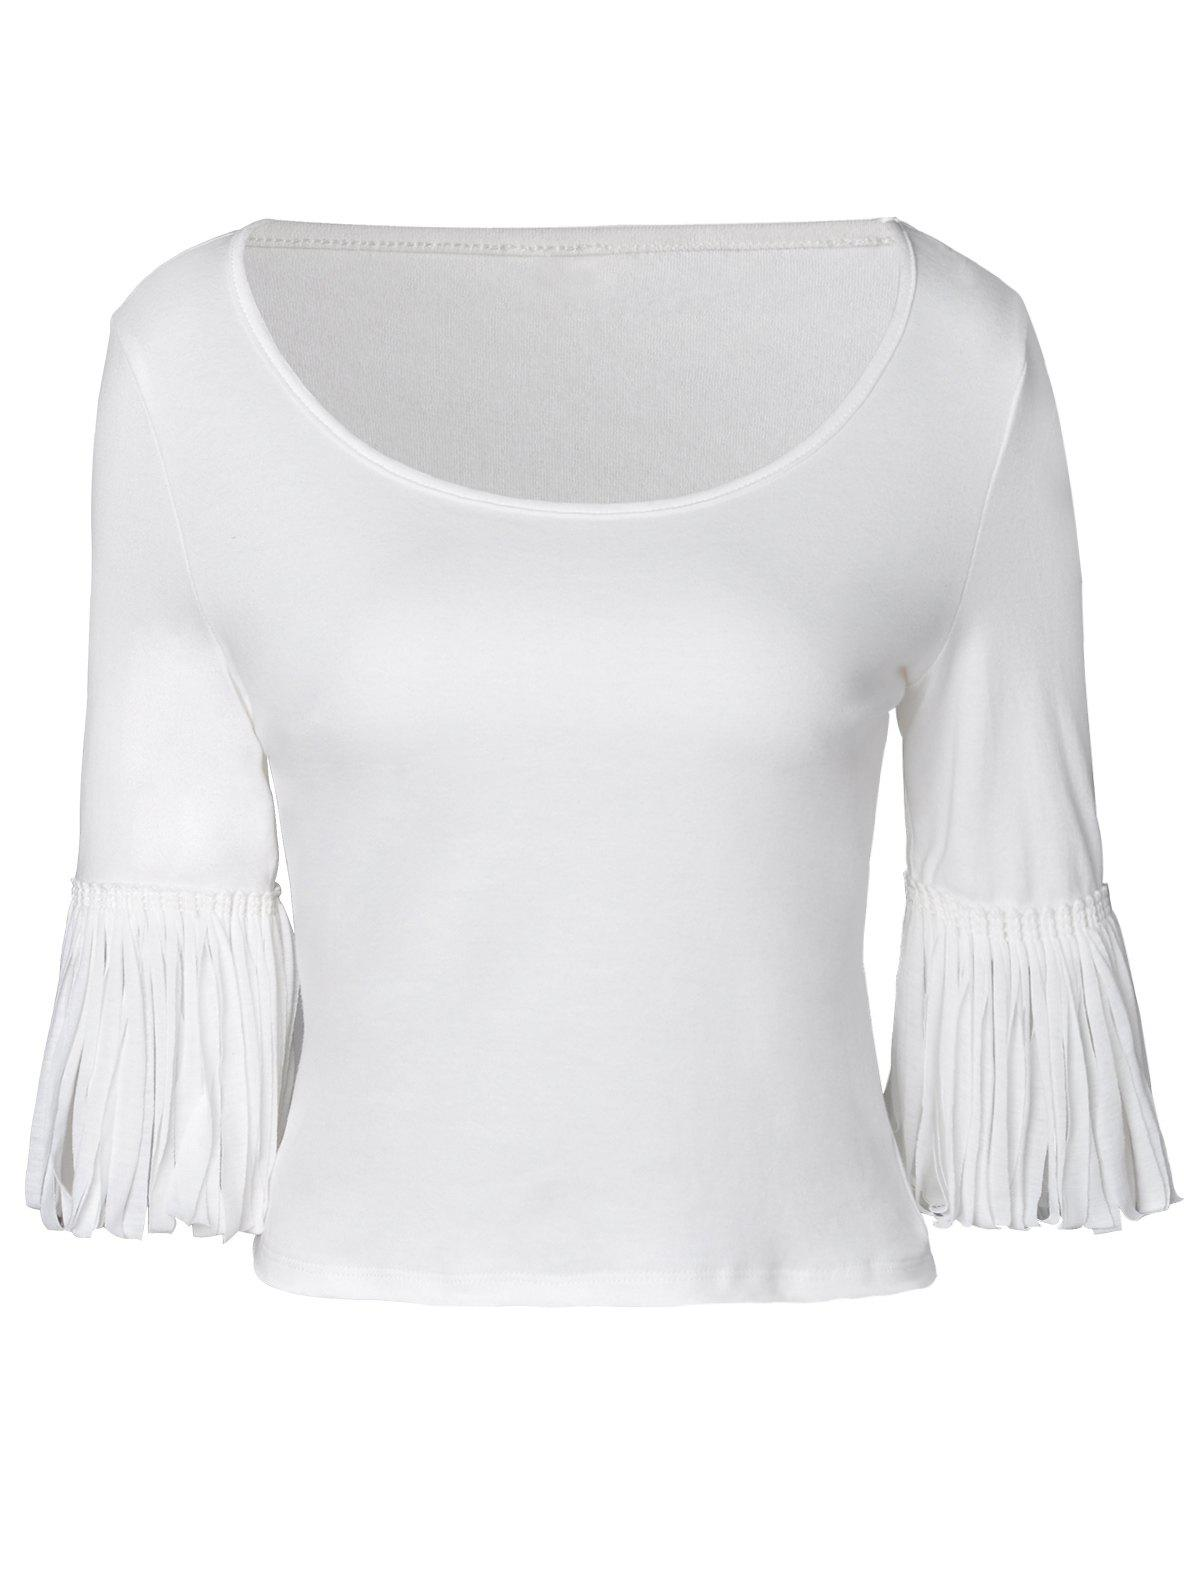 Elegant Knit Half Sleeve Render T-Shirt For Women - WHITE M